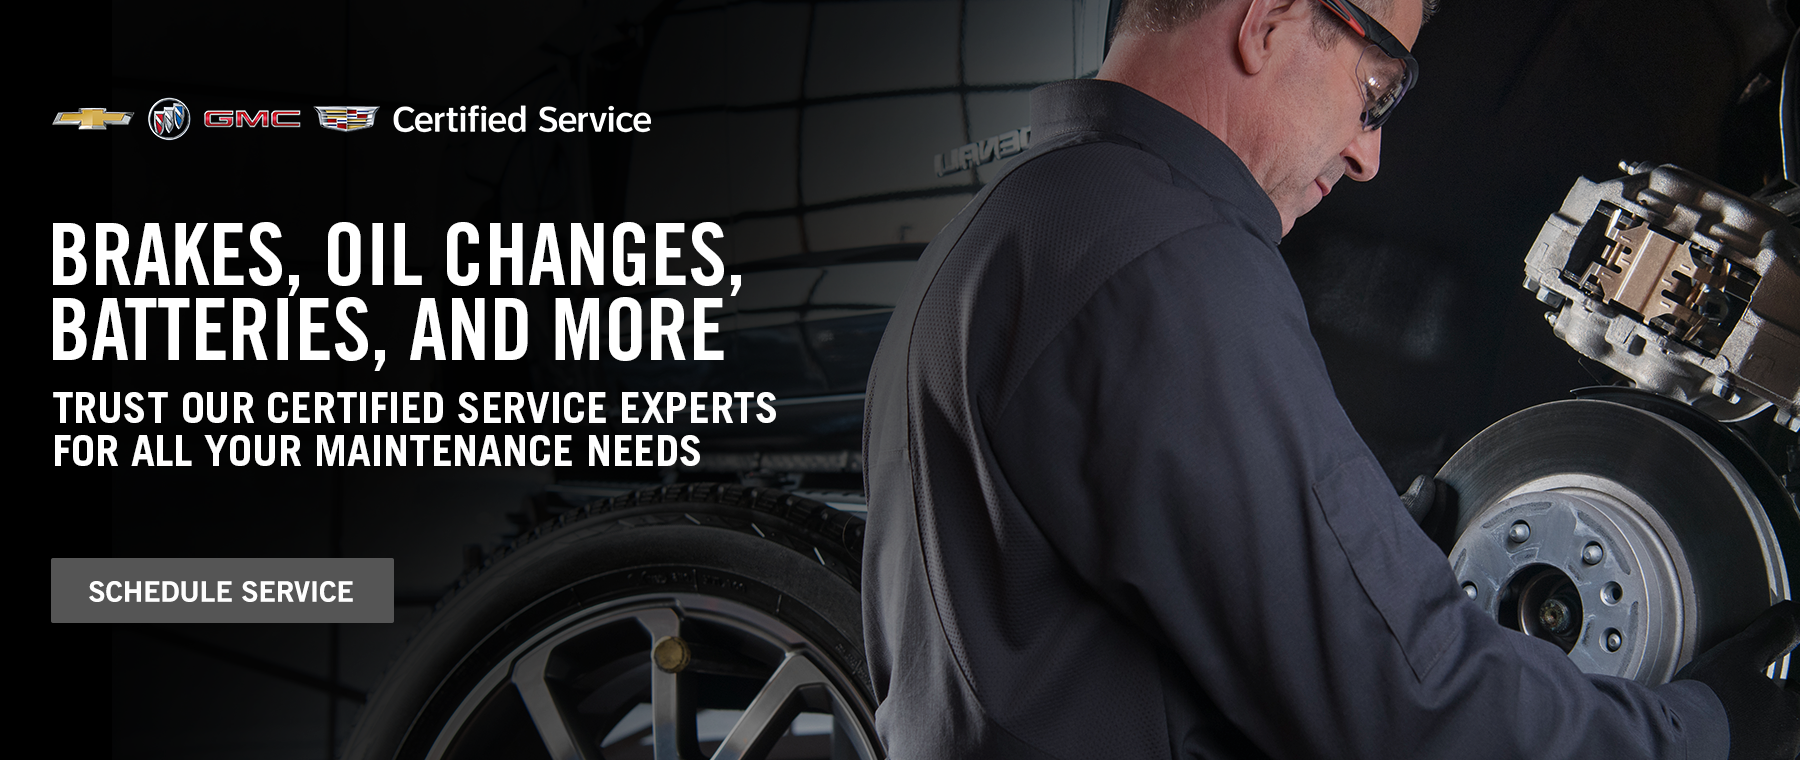 Brakes, Oil Changes, Batteries, and More - Schedule Service